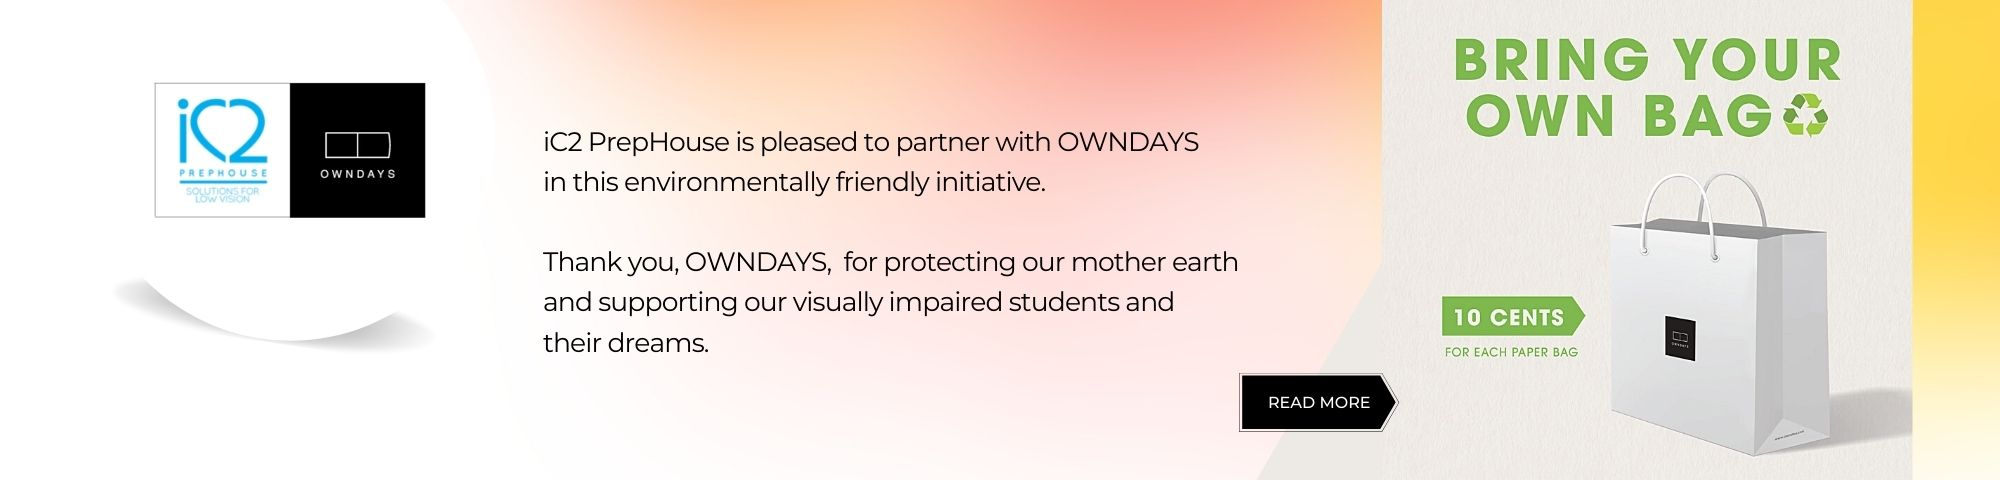 iC2 PrepHouse is pleased to partner with OWNDAYS in this environmentally friendly initiative. Thank you, OWNDAYS, for protecting our mother earth and supporting our visually impaired students and their dreams. Read more at https://www.facebook.com/owndays.sg/photos/a.612638702109200/4399341340105565